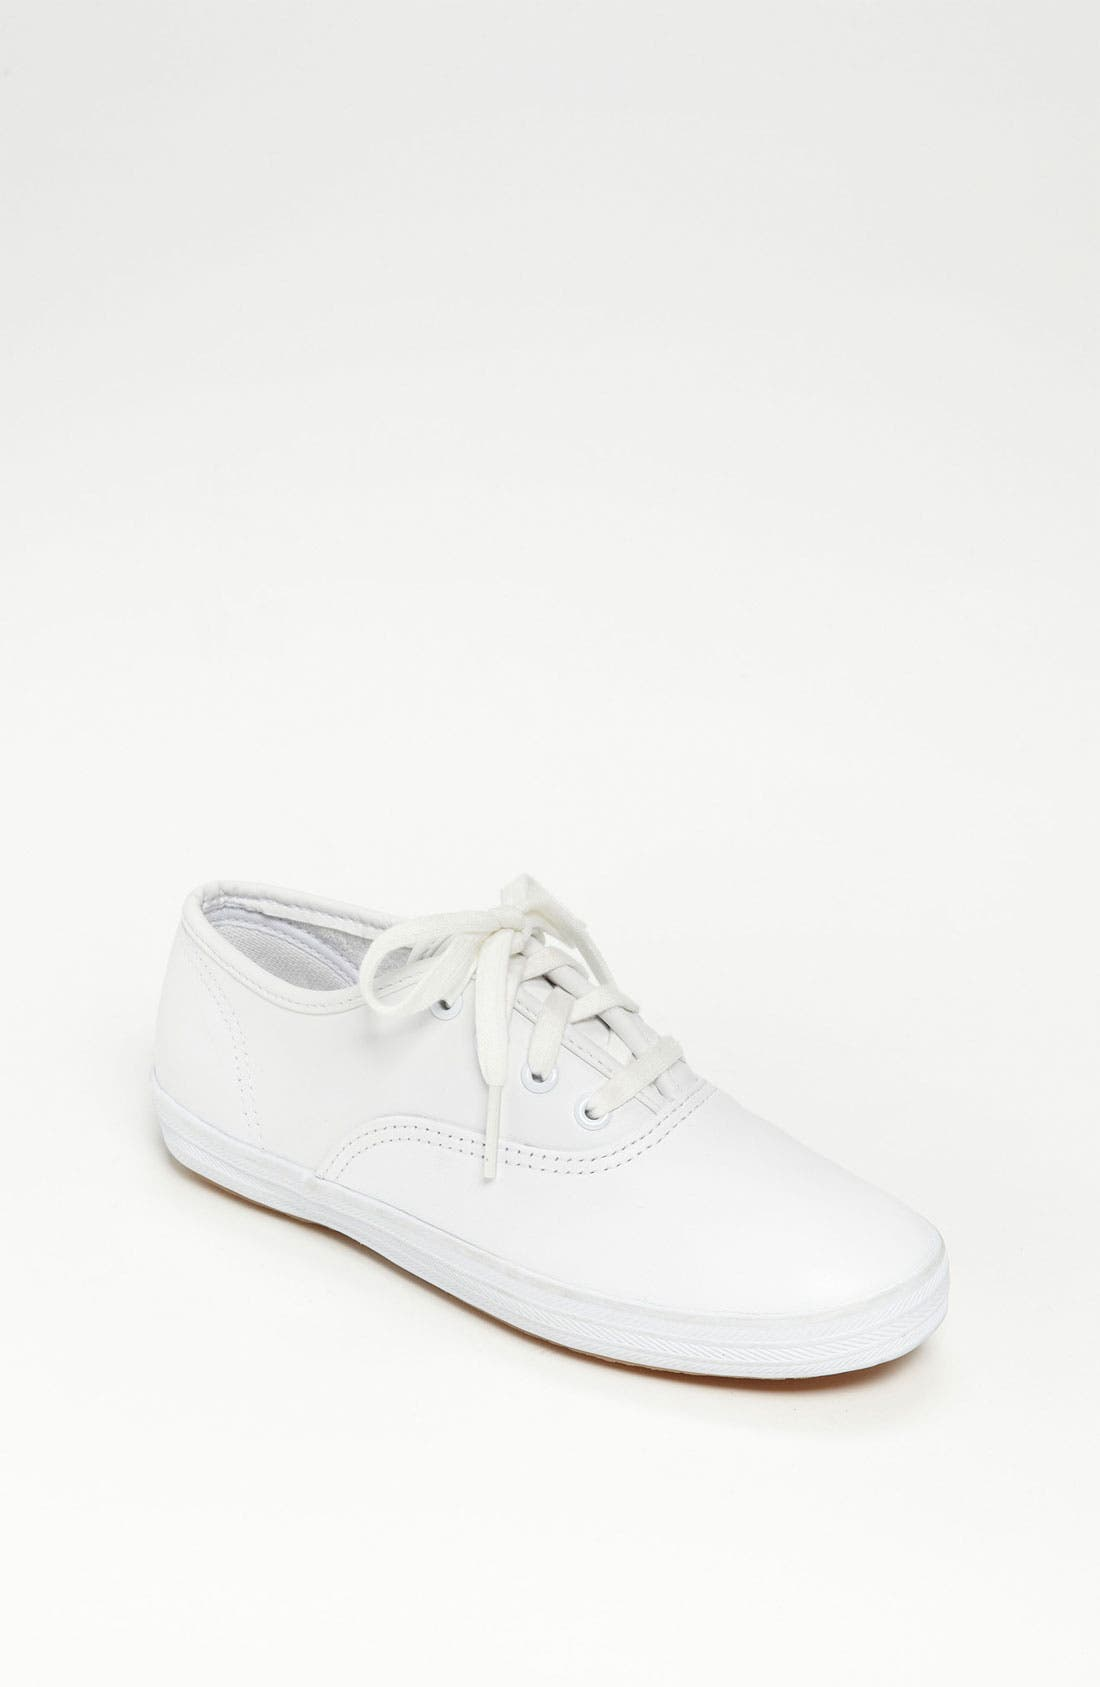 'Champion' Sneaker,                         Main,                         color, White Leather